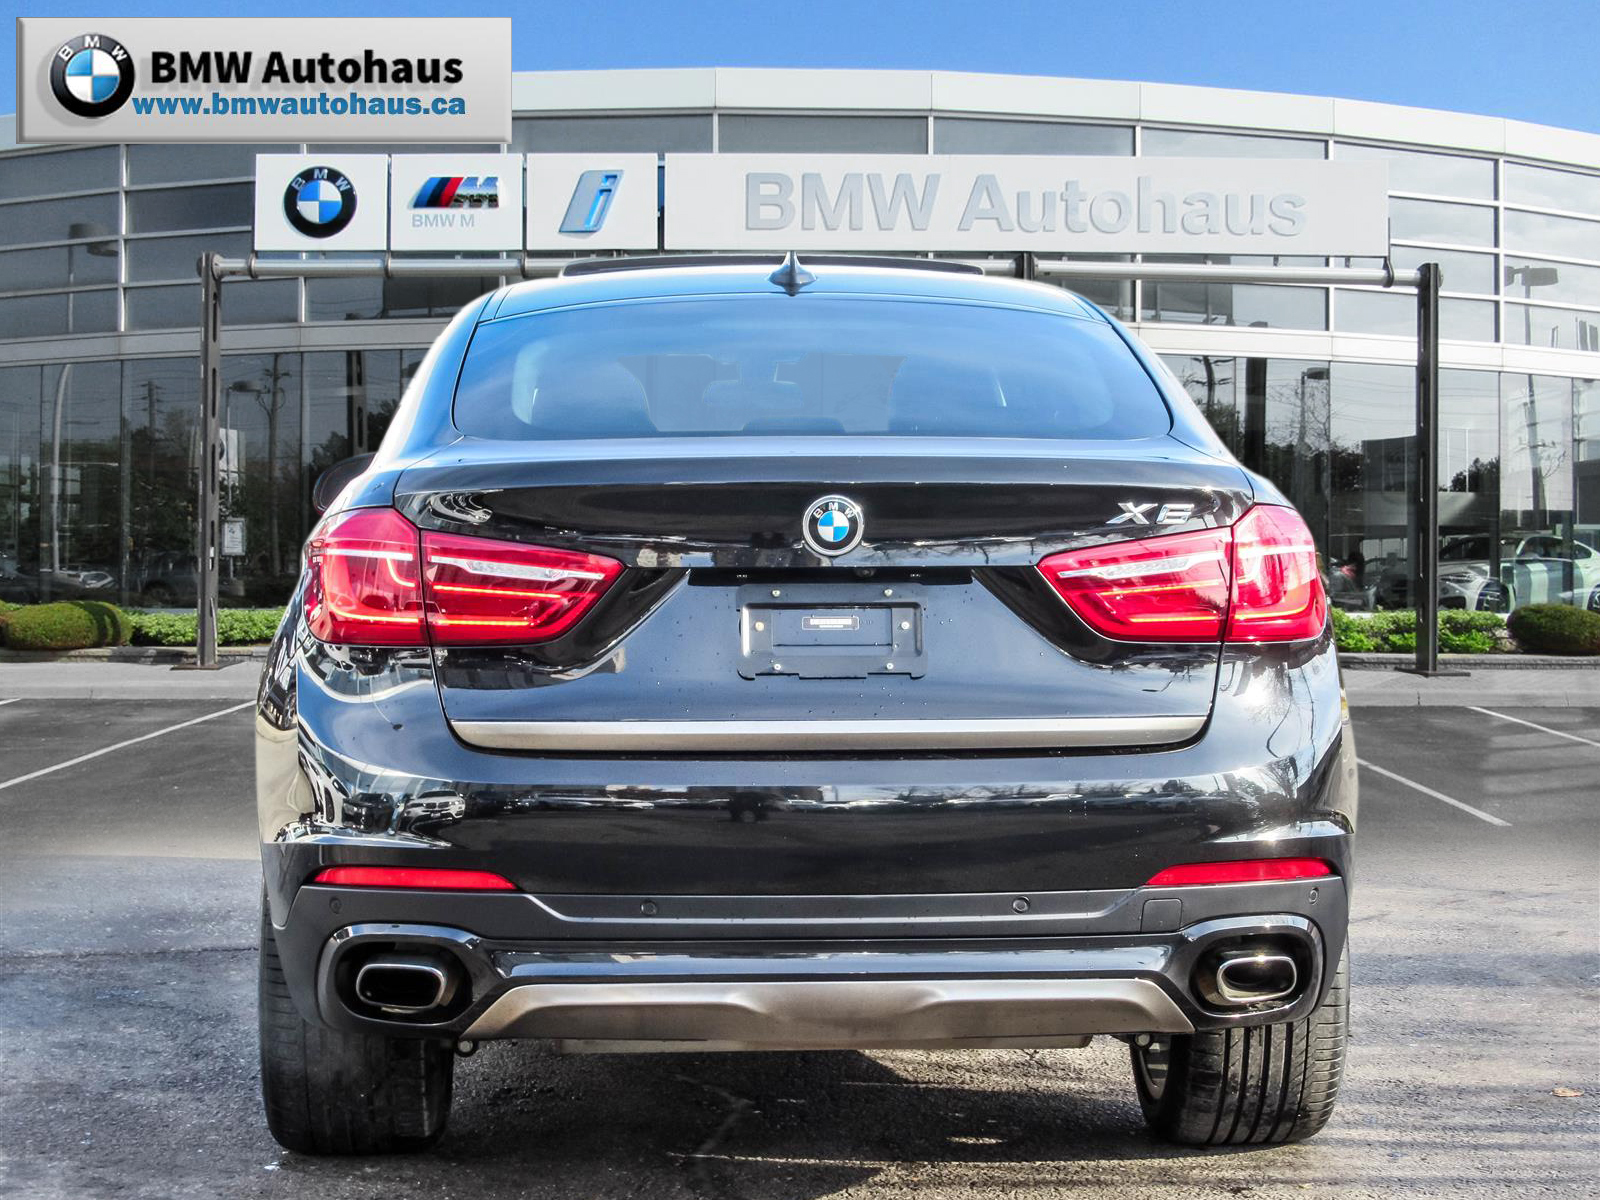 Used 2018 BMW X6 in Thornhill,ON